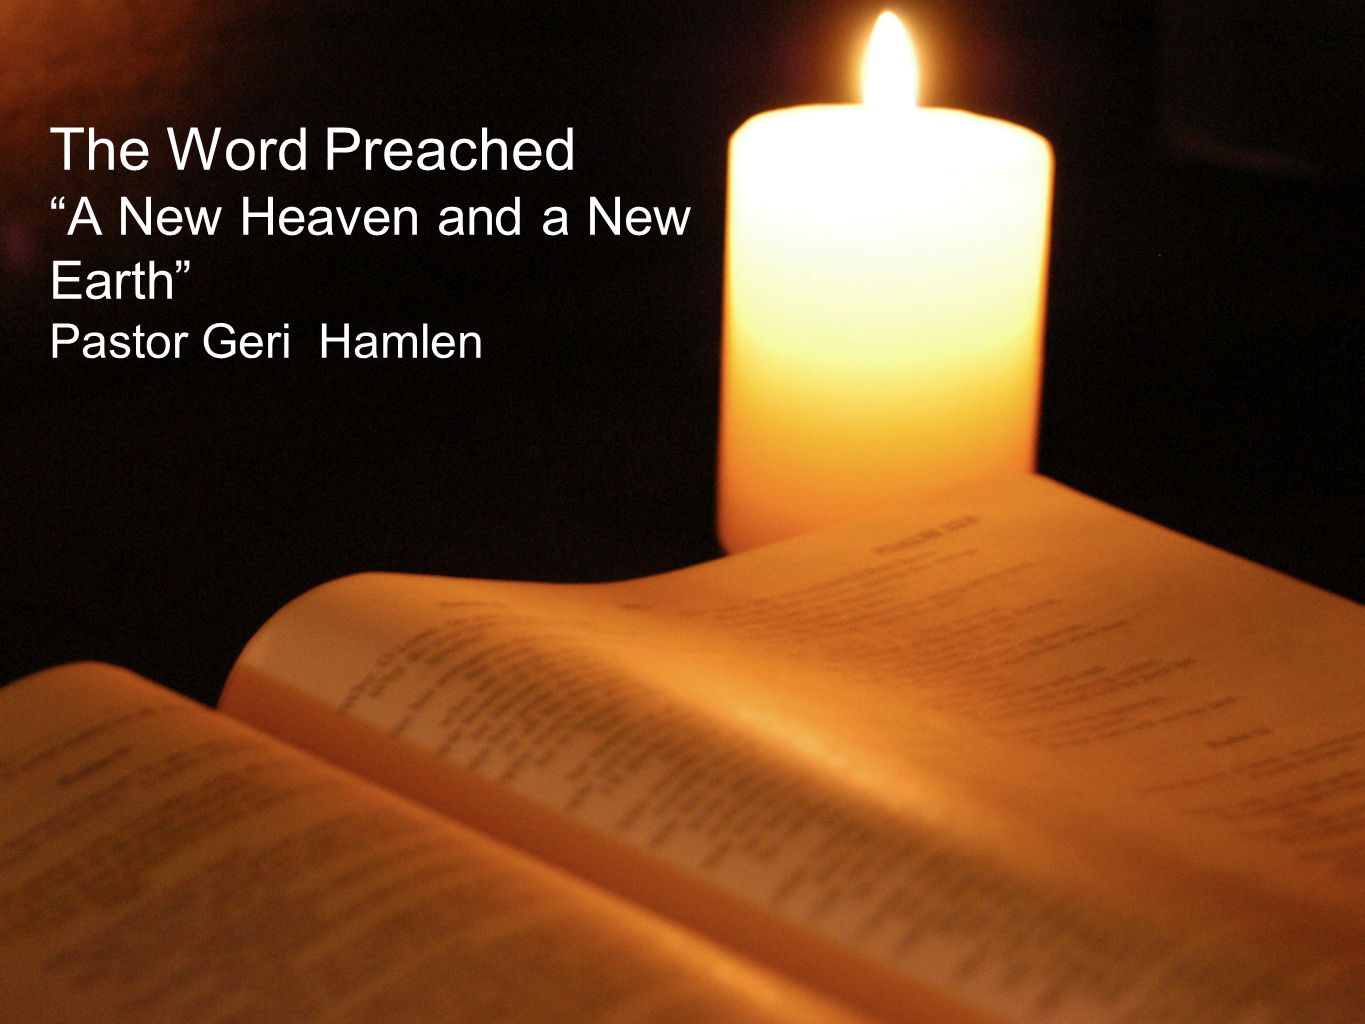 The Word Preached A New Heaven and a New Earth Pastor Geri Hamlen